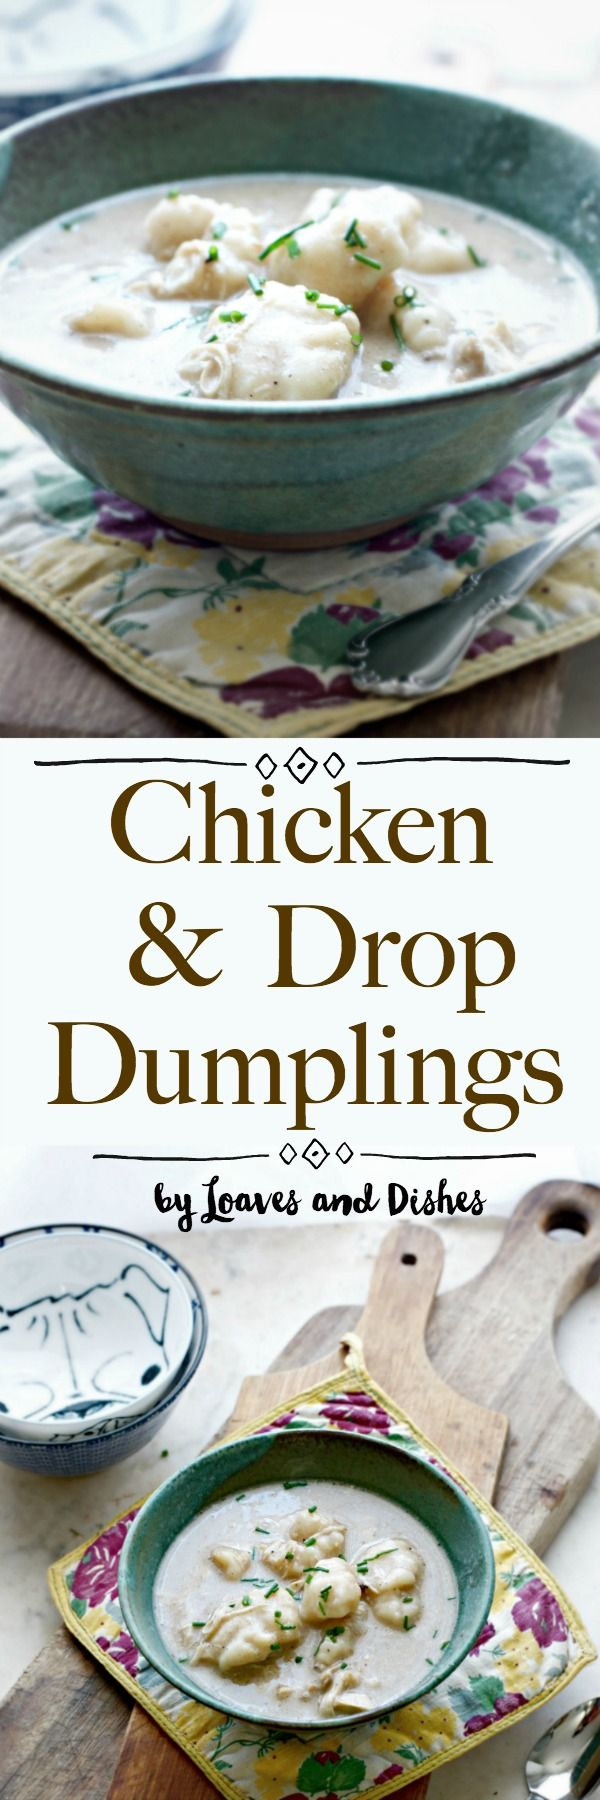 This recipe features drop dumplings for a classic southern creamy from scratch recipes for Homemade Chicken and Drop Dumplings. Something like what Pioneer Woman and Paula Deen make